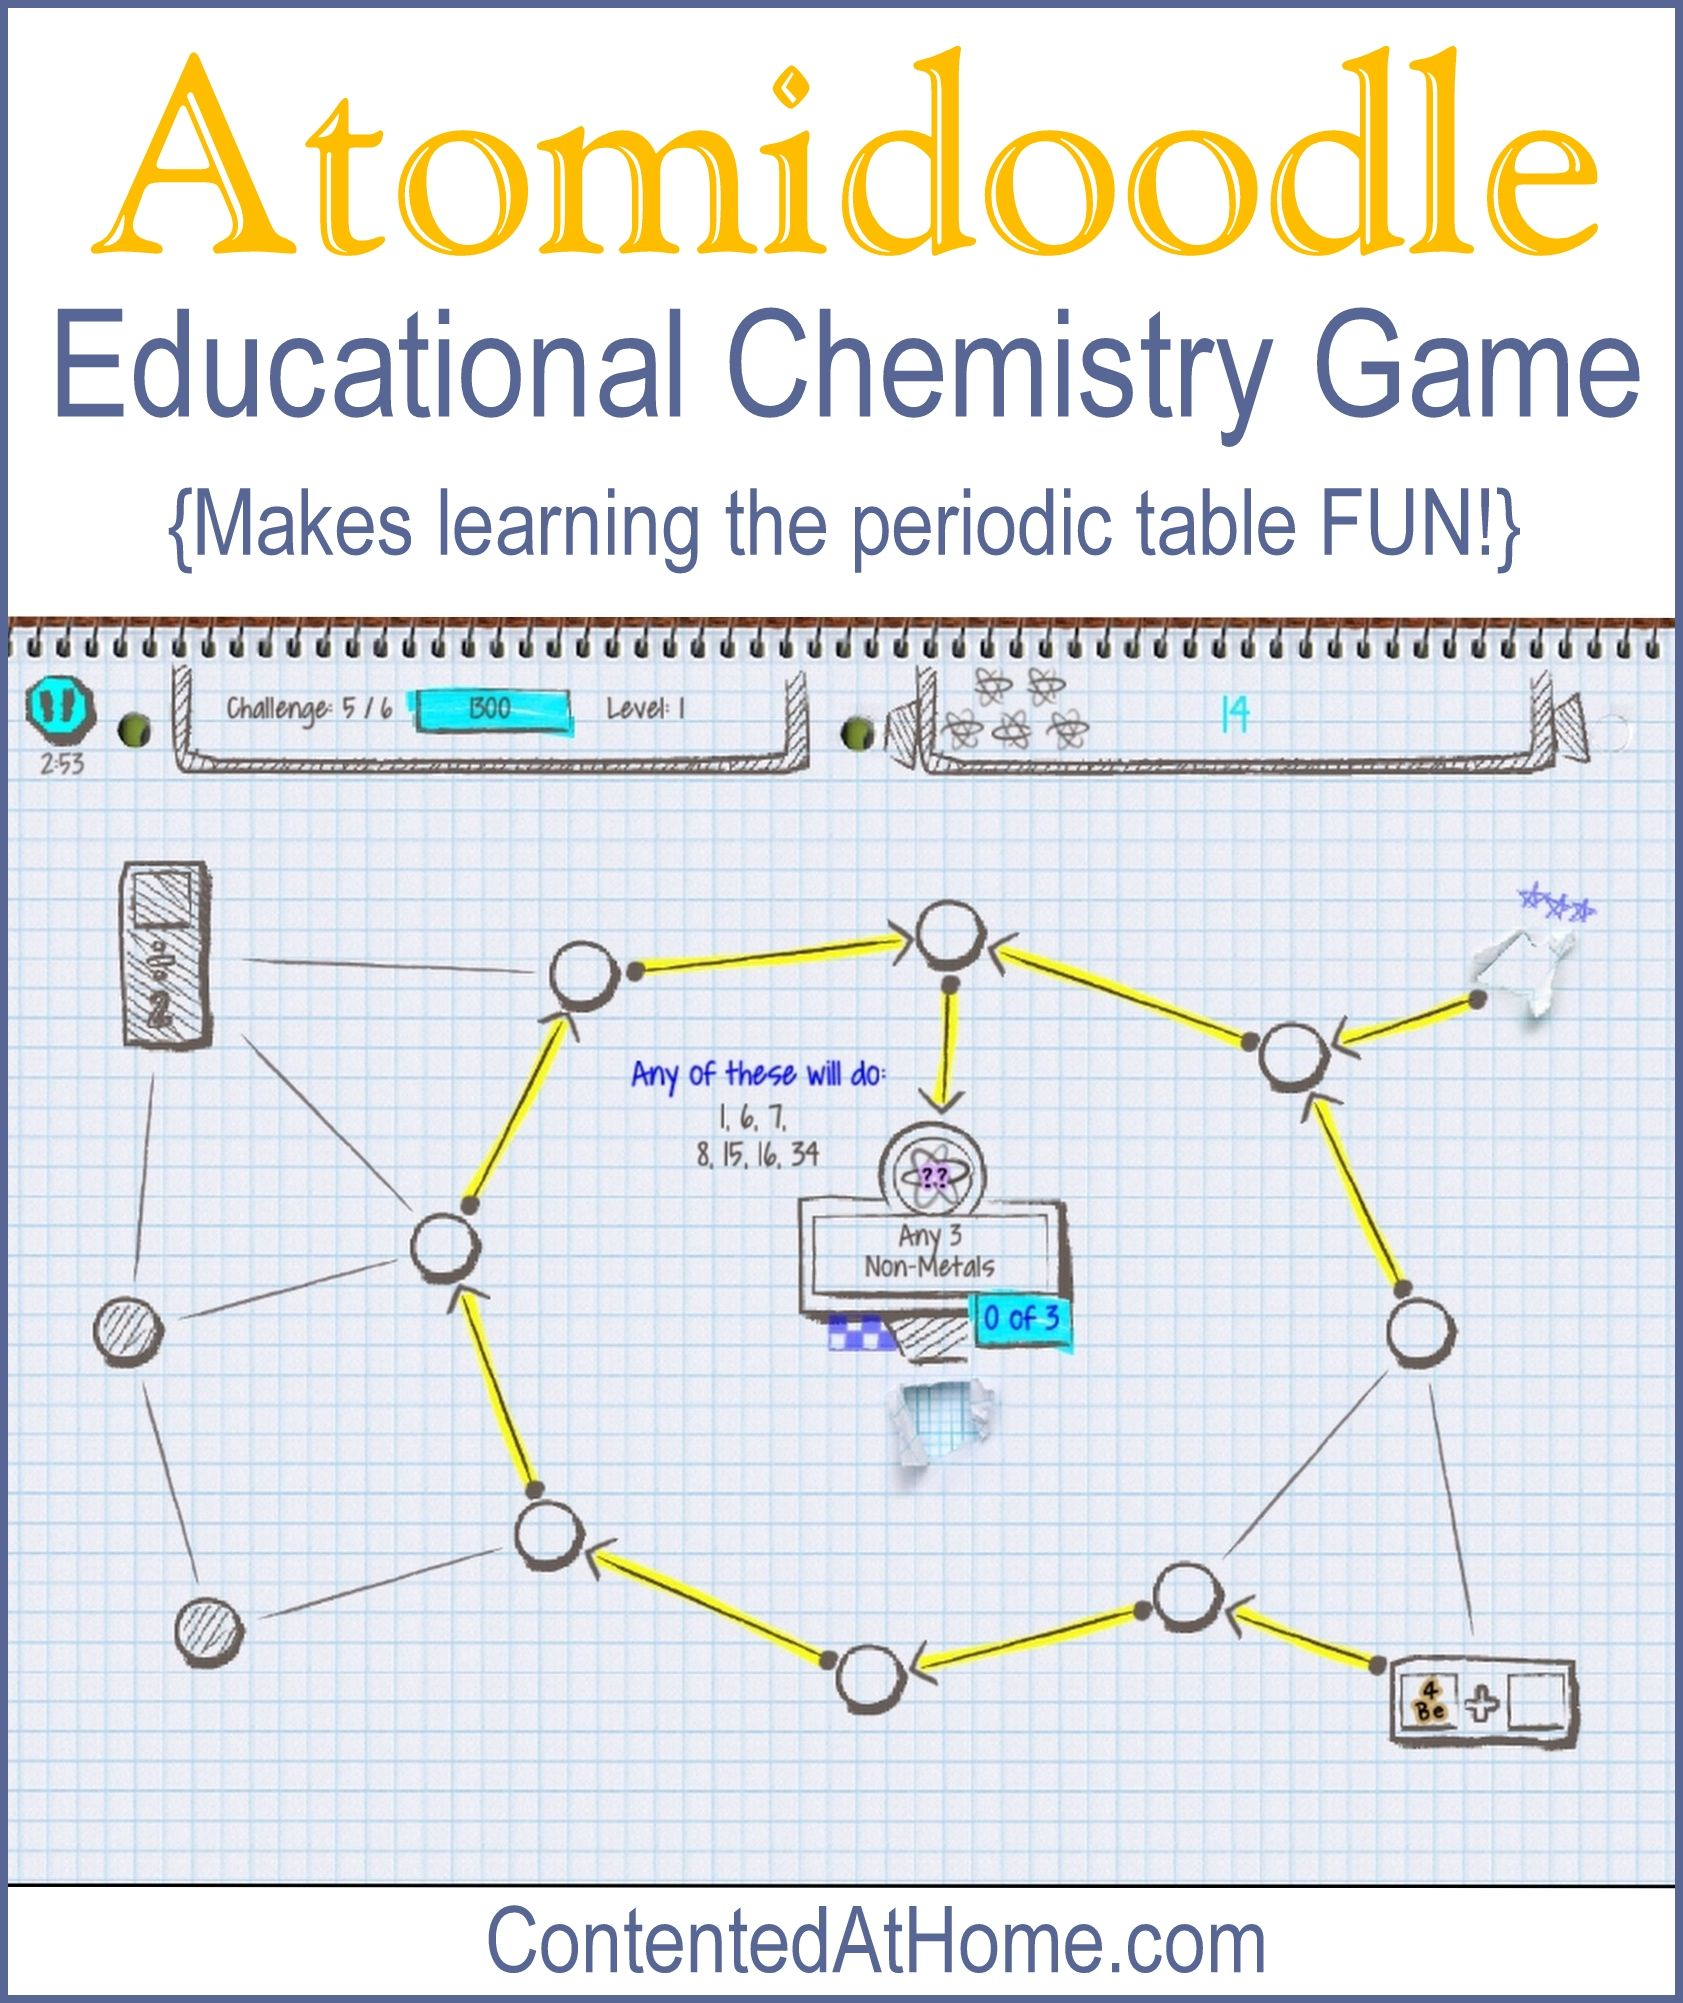 Atomidoodle Educational Chemistry Game